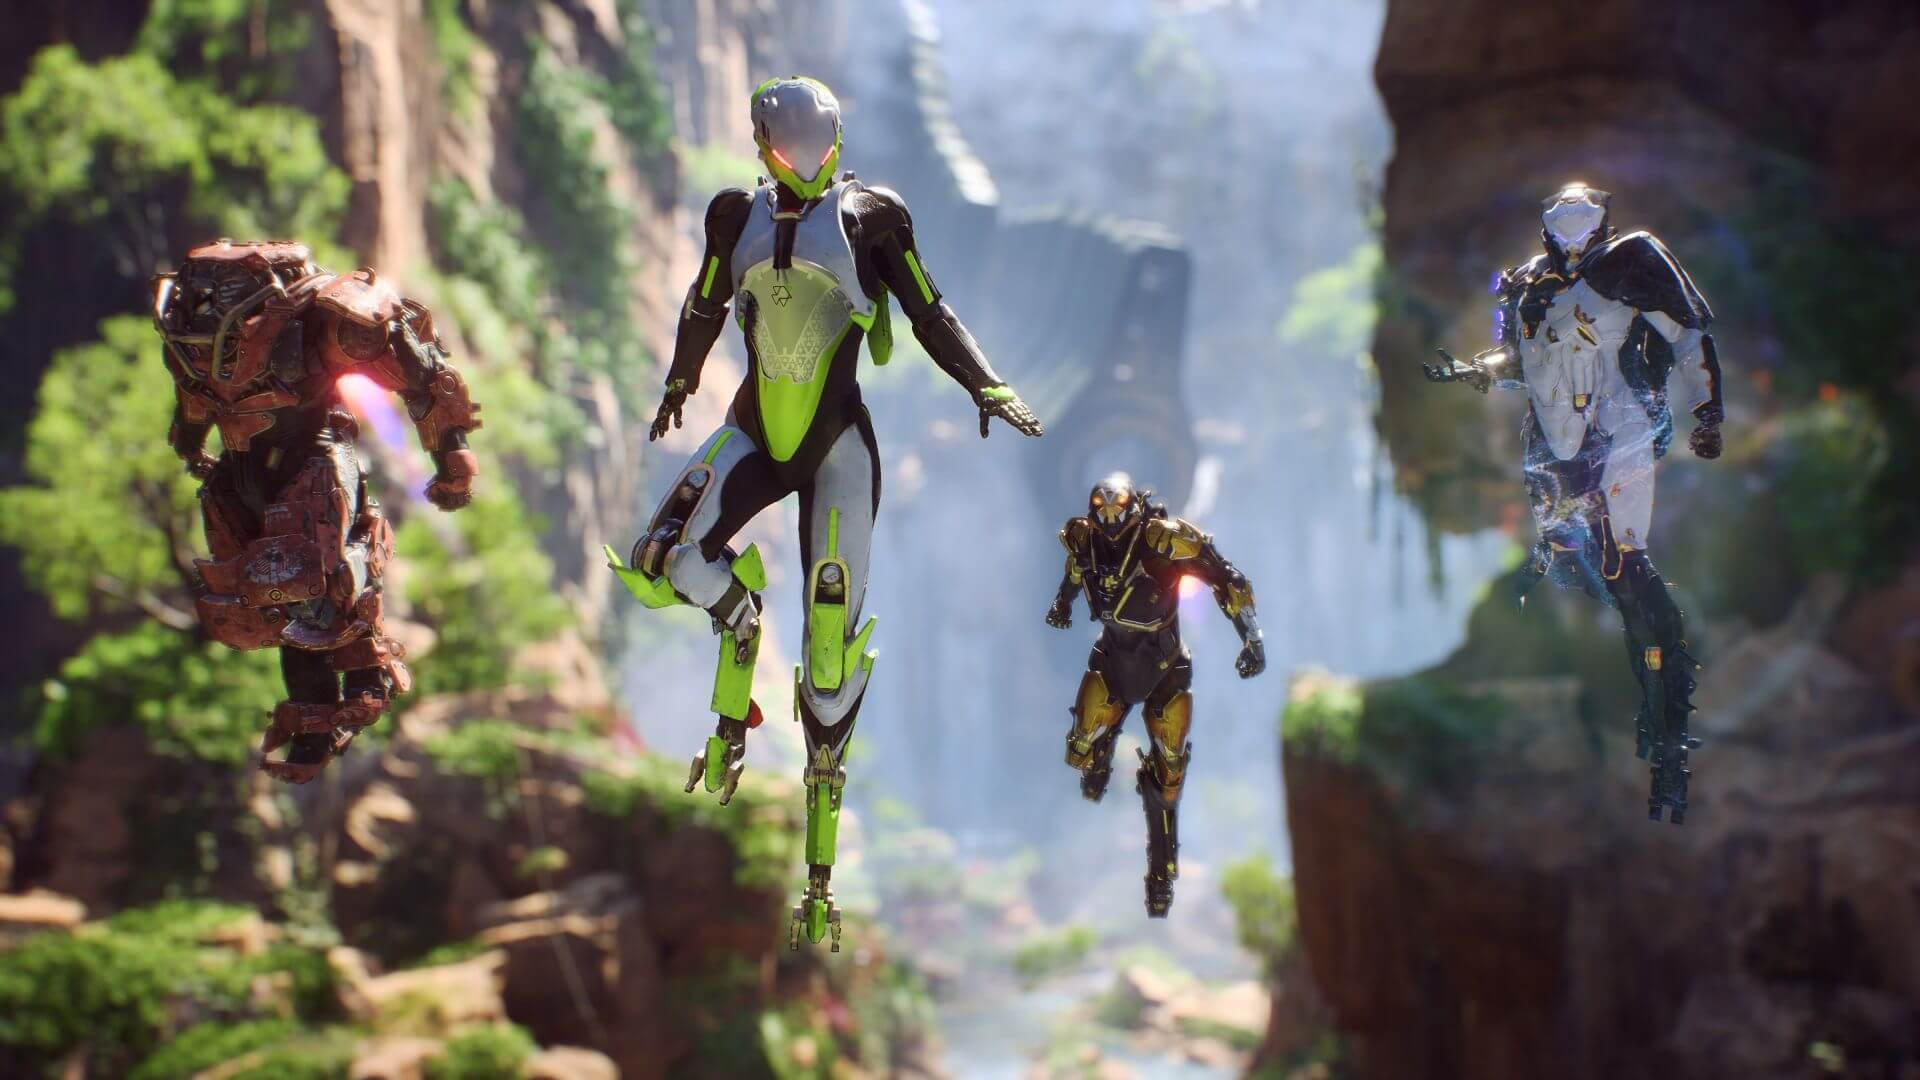 Anthem Patch 1.7.0 is now available for download, full patch notes